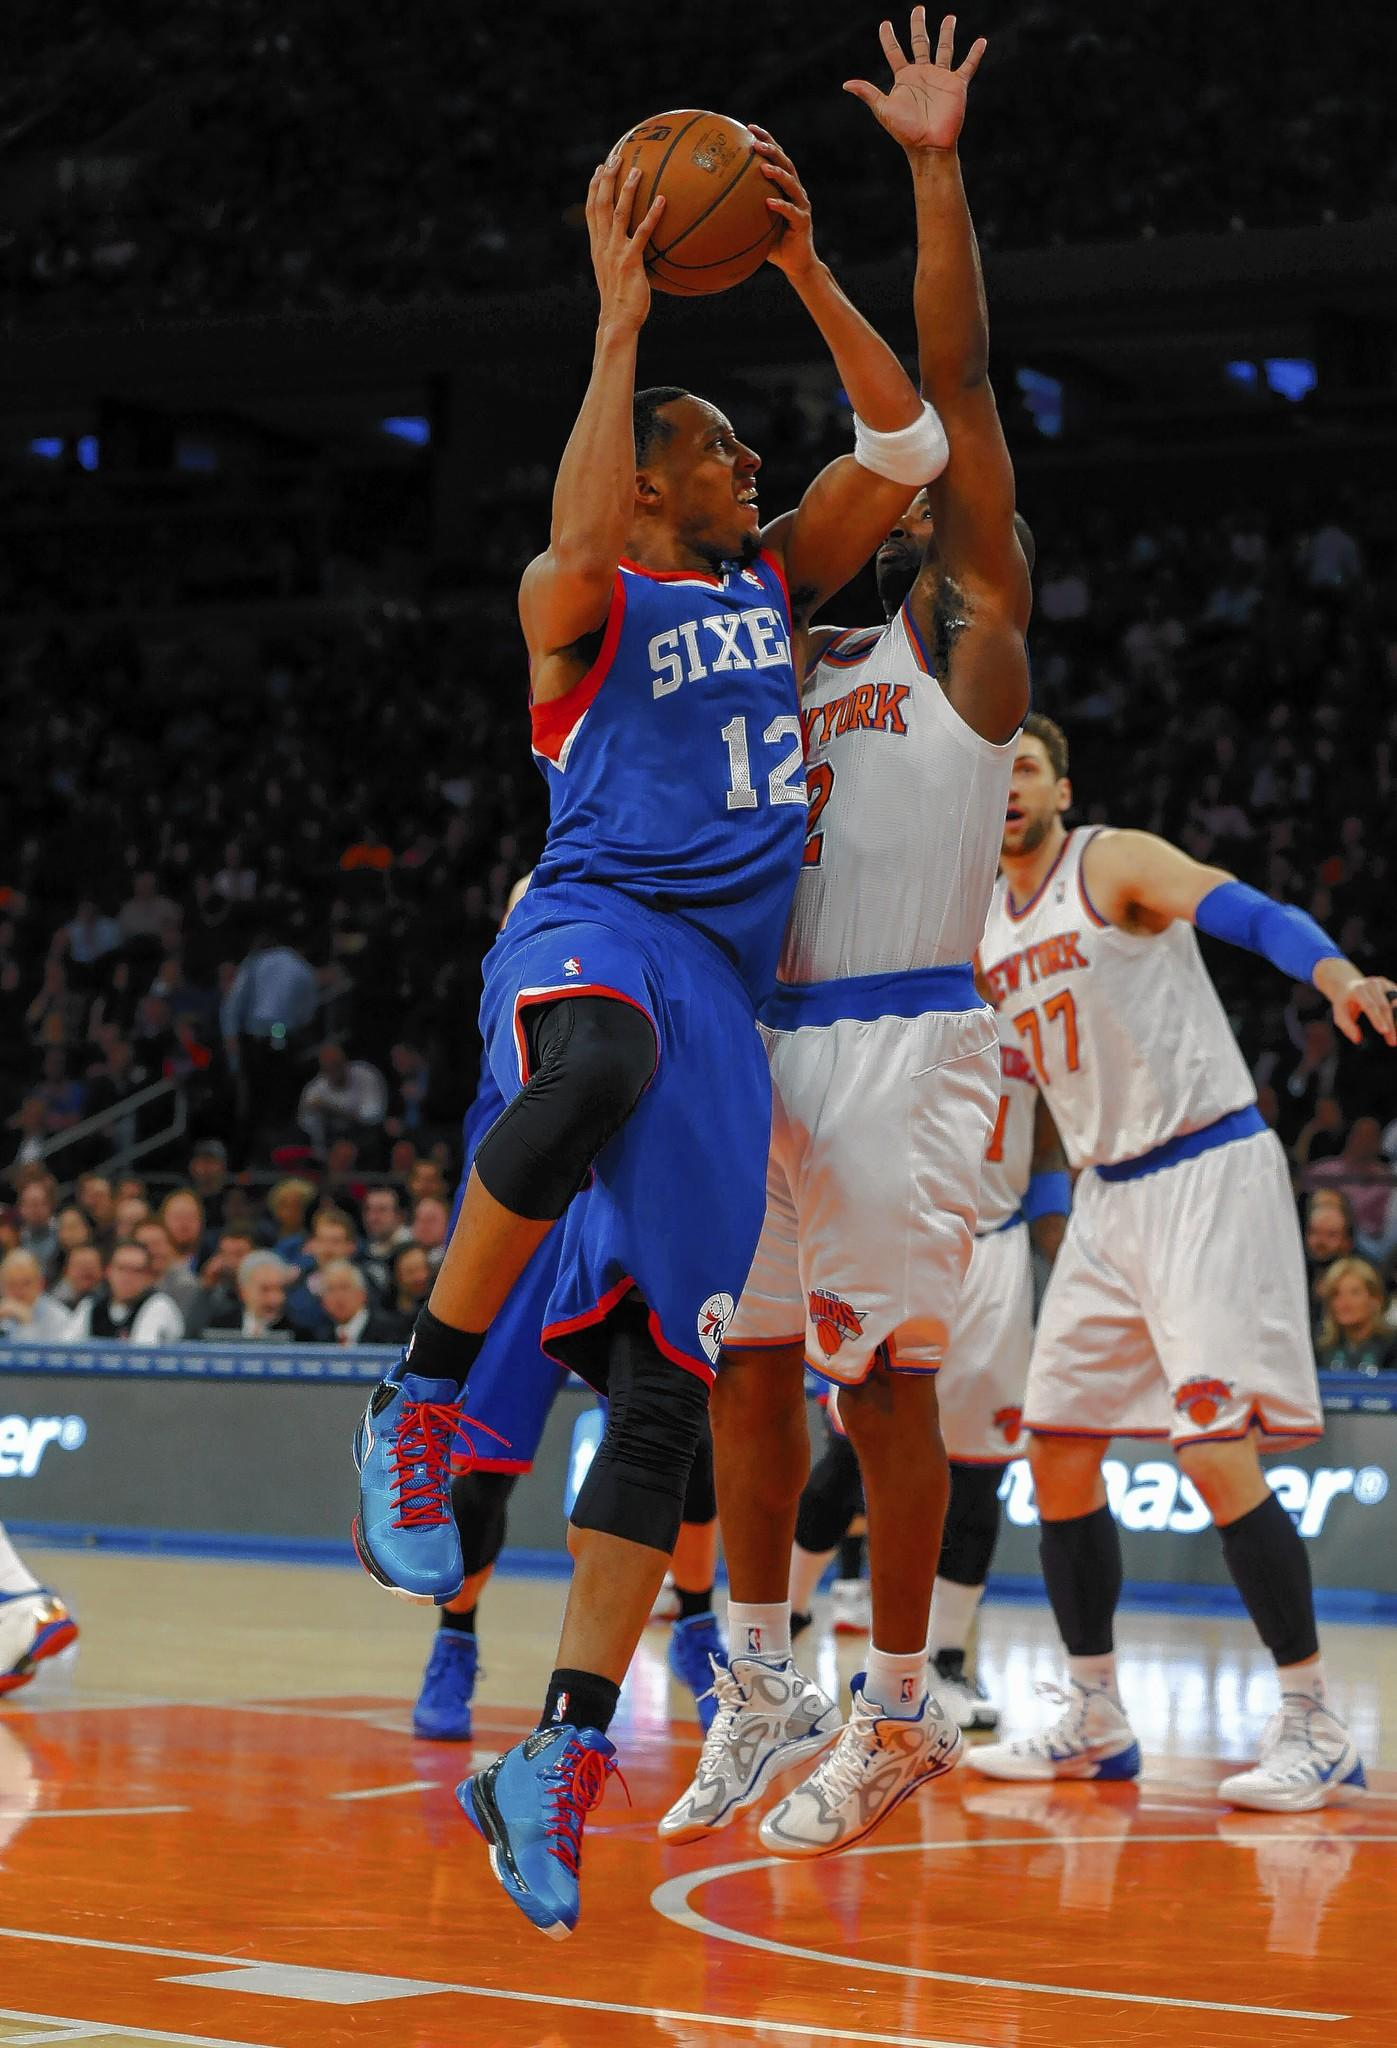 Jan 22, 2014; New York, NY, USA; Philadelphia 76ers small forward Evan Turner (12) drives to the basket during the first half against New York Knicks point guard Raymond Felton (2) at Madison Square Garden.